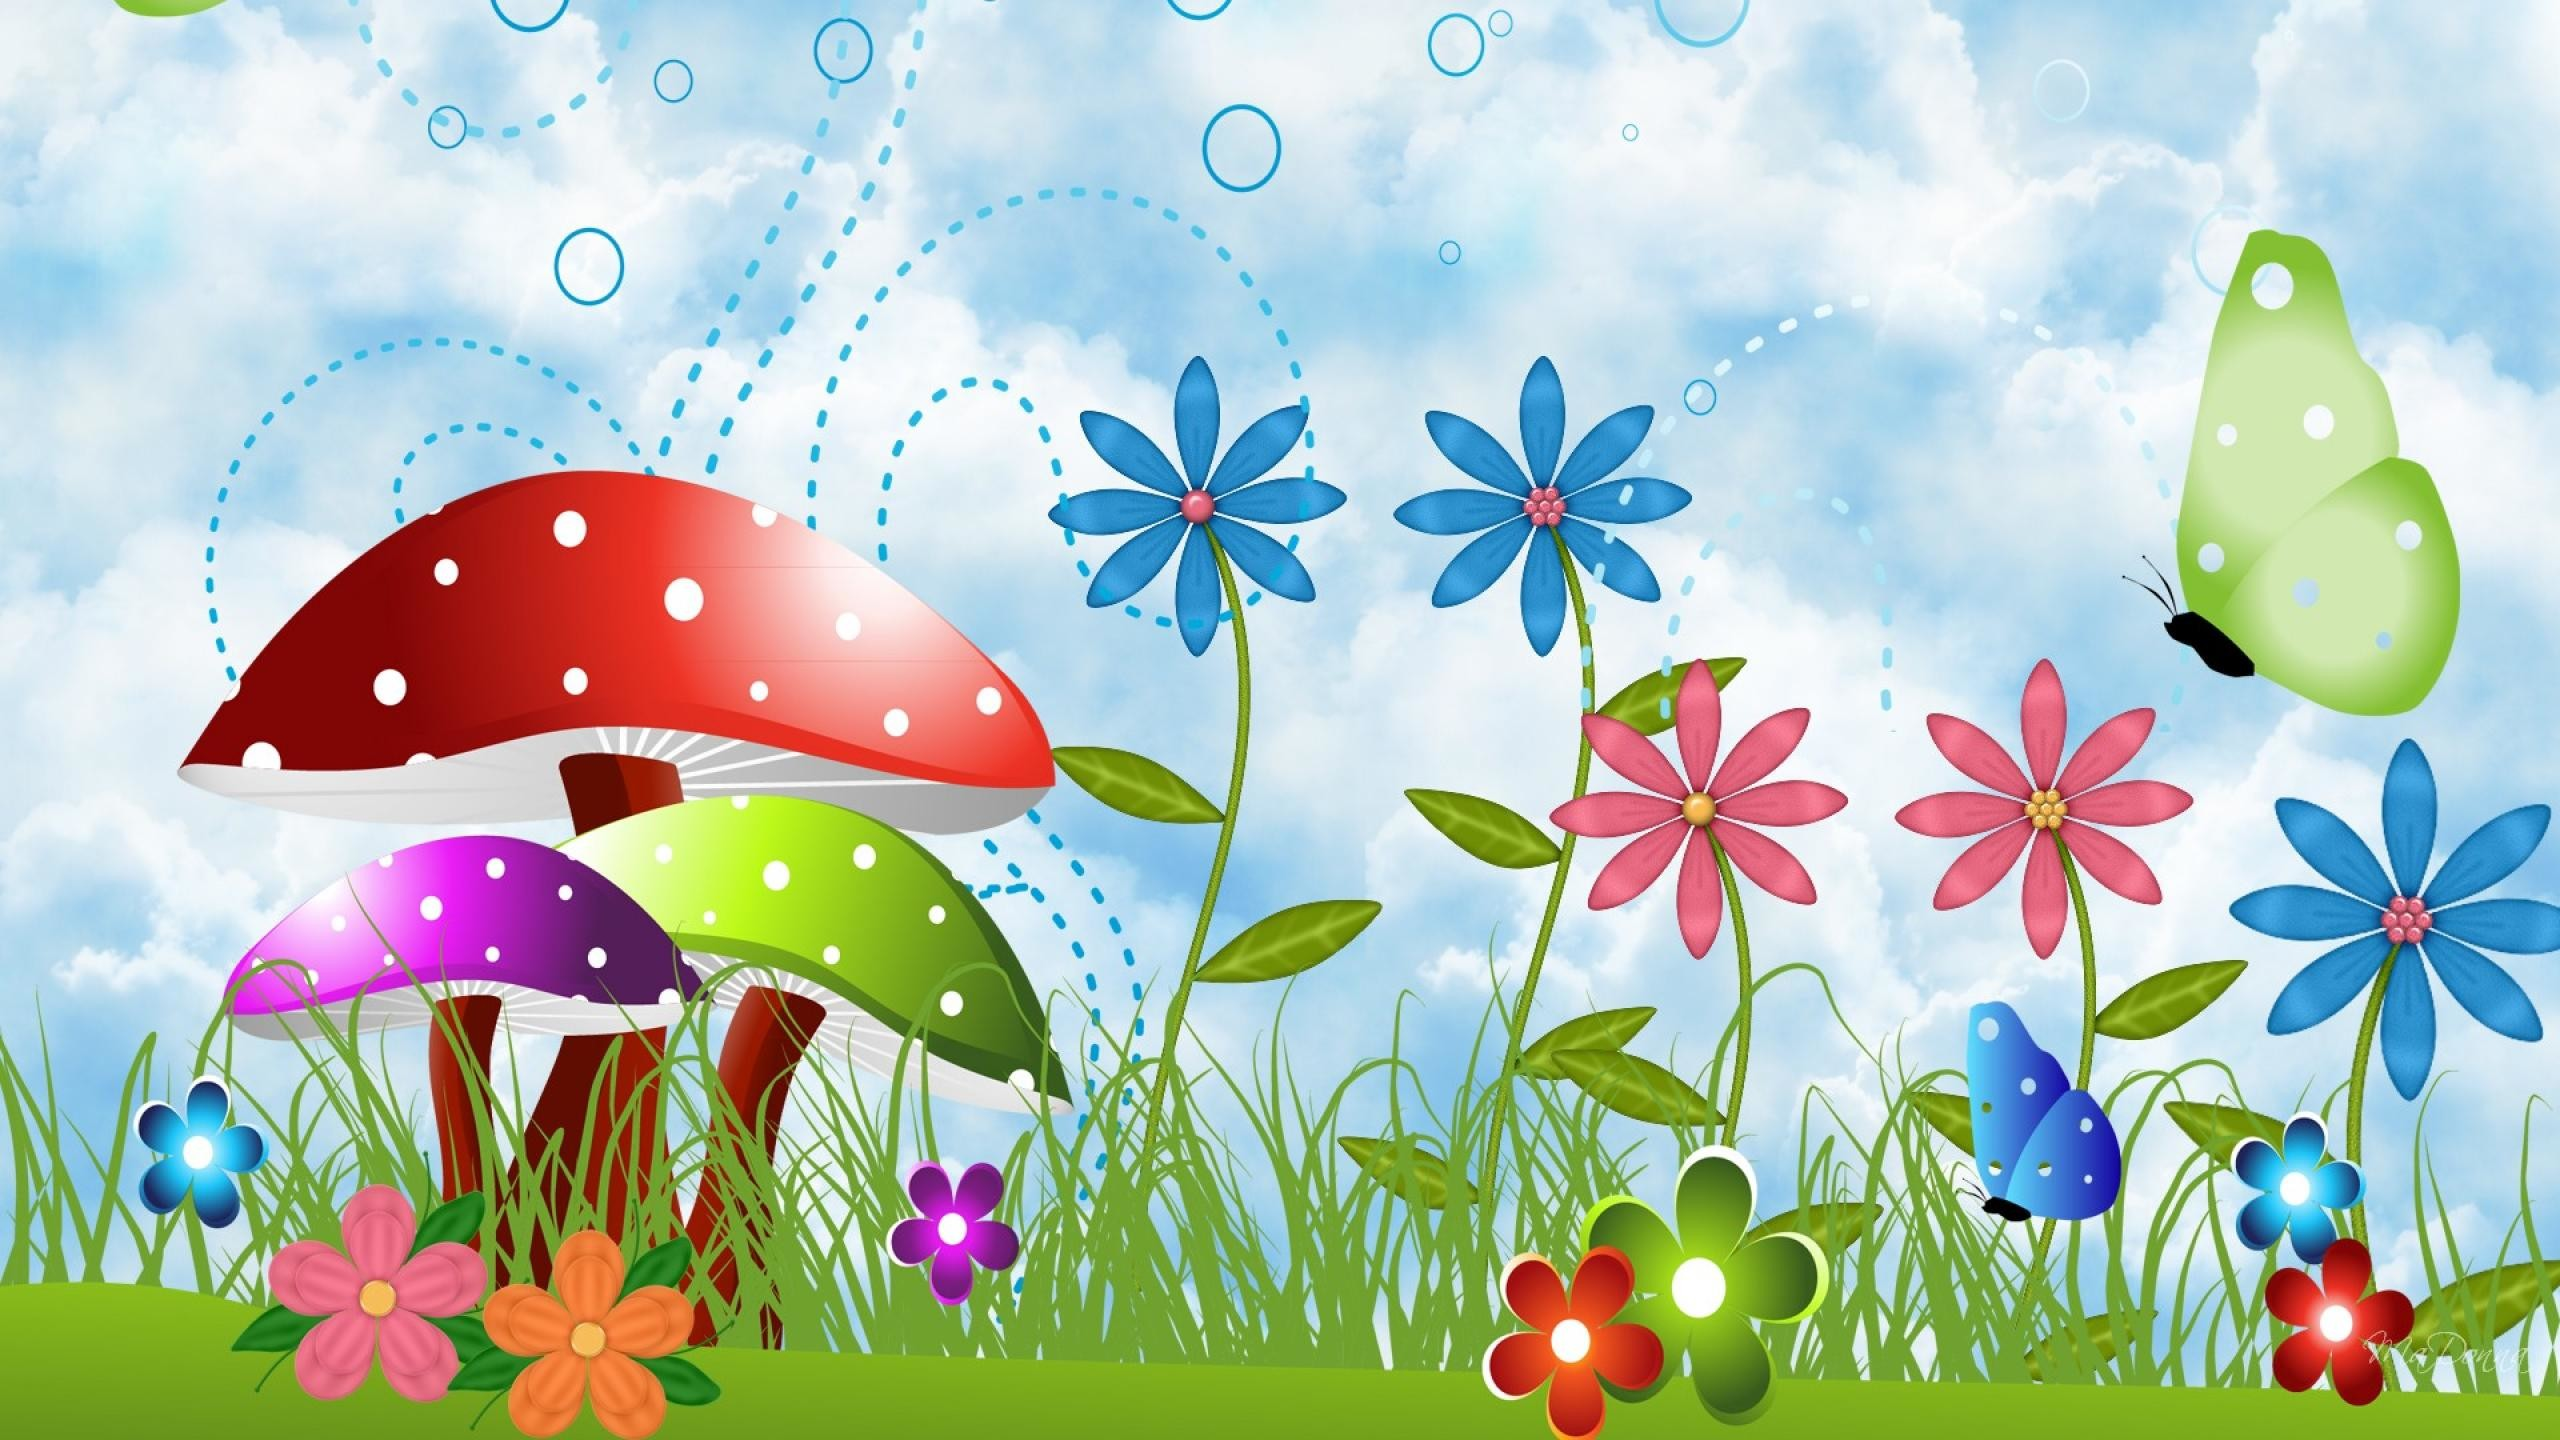 Res: 2560x1440, Spring clipart spring wallpaper #1